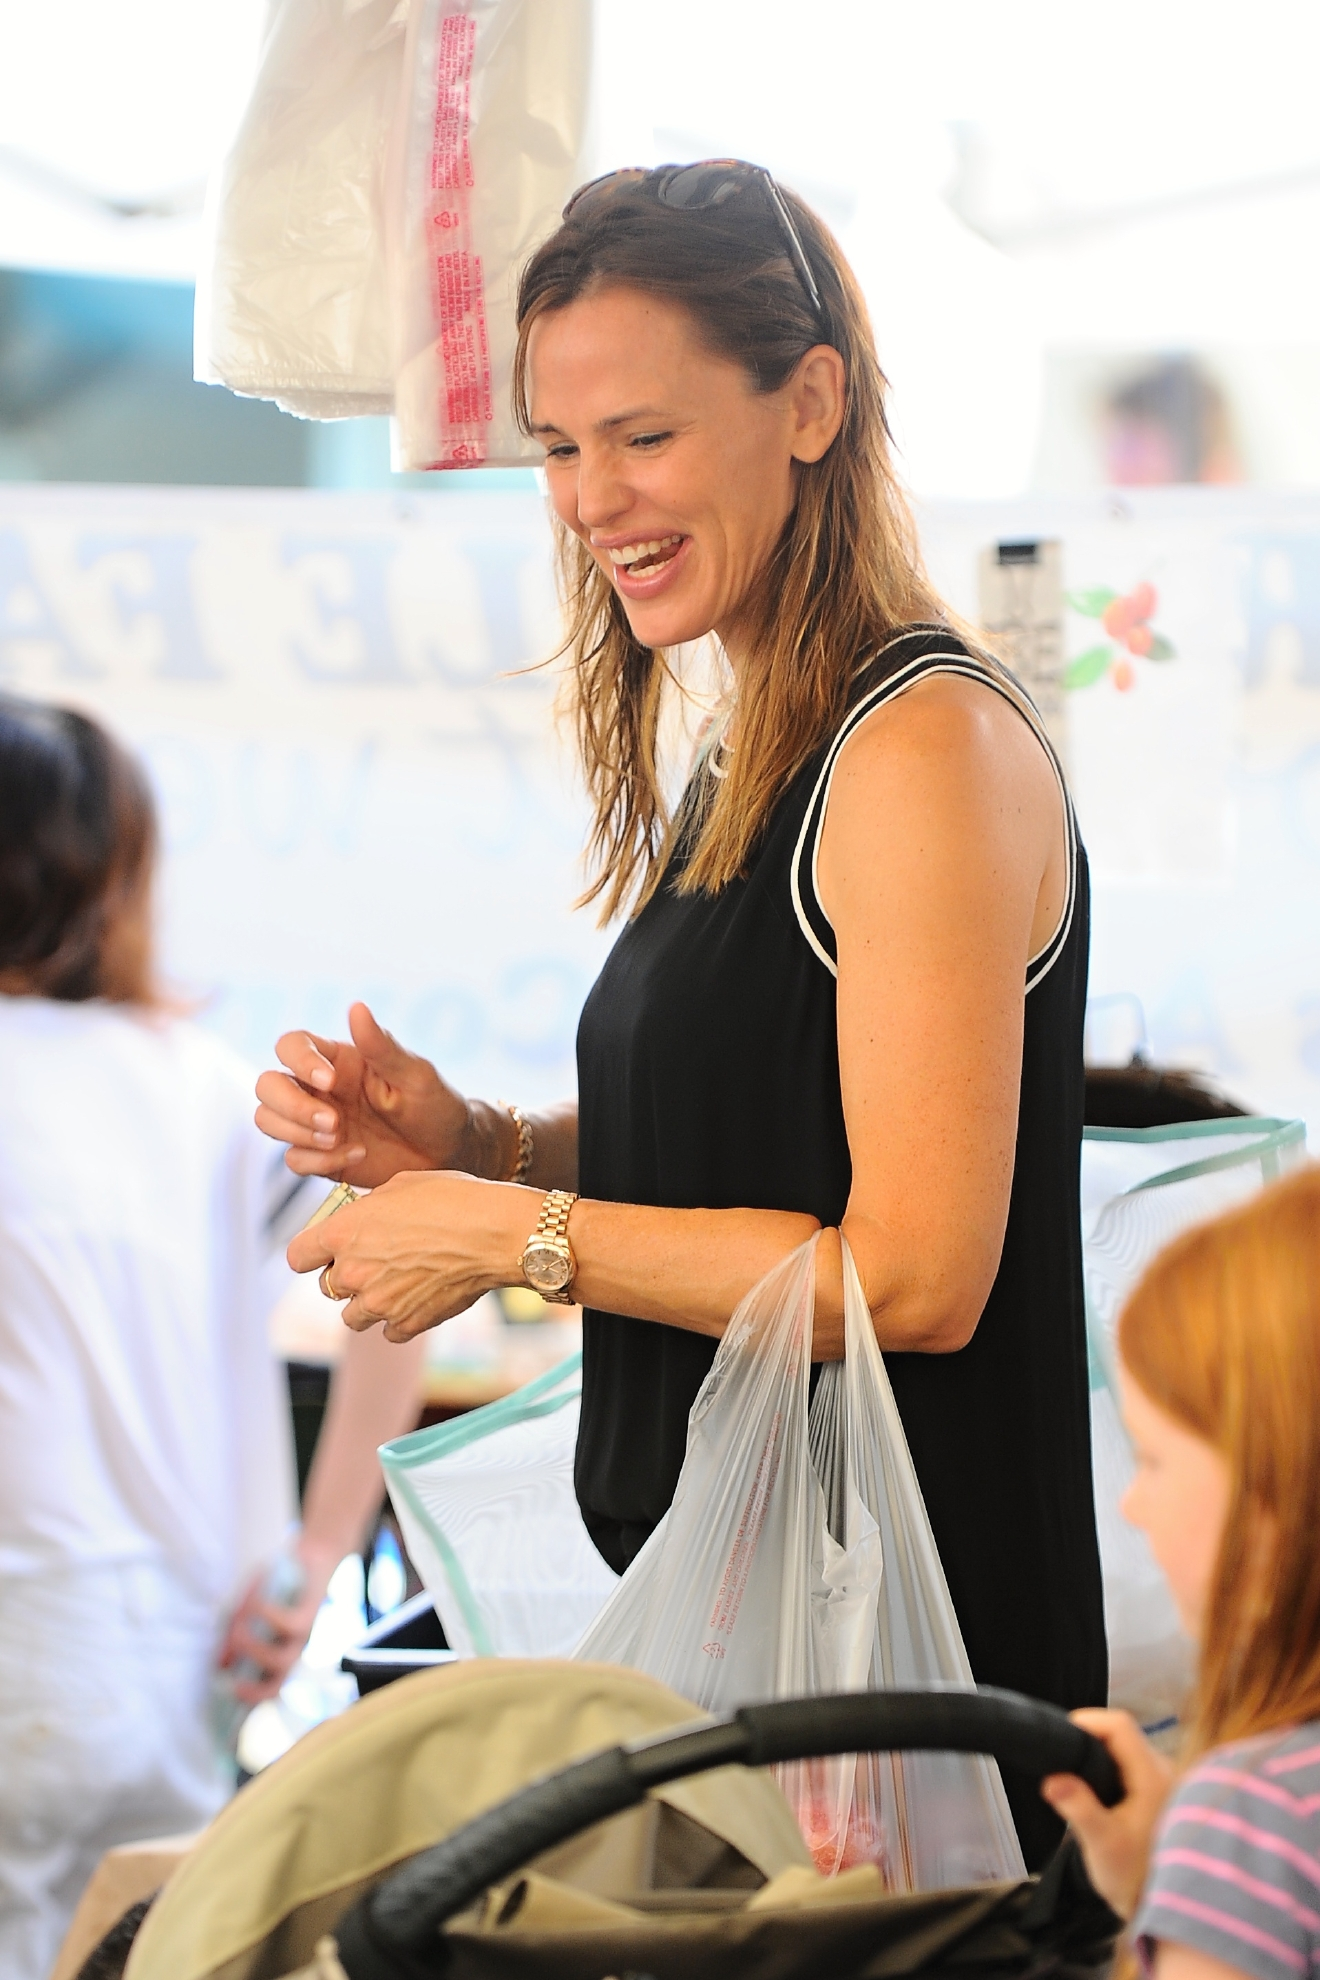 Ben Affleck and Jennifer Garner take their children to the Pacific Palisades Farmers Market. Ben could be seen without his wedding ring.                                    Featuring: Jennifer Garner                  Where: Los Angeles, California, United States                  When: 20 Sep 2015                  Credit: WENN.com